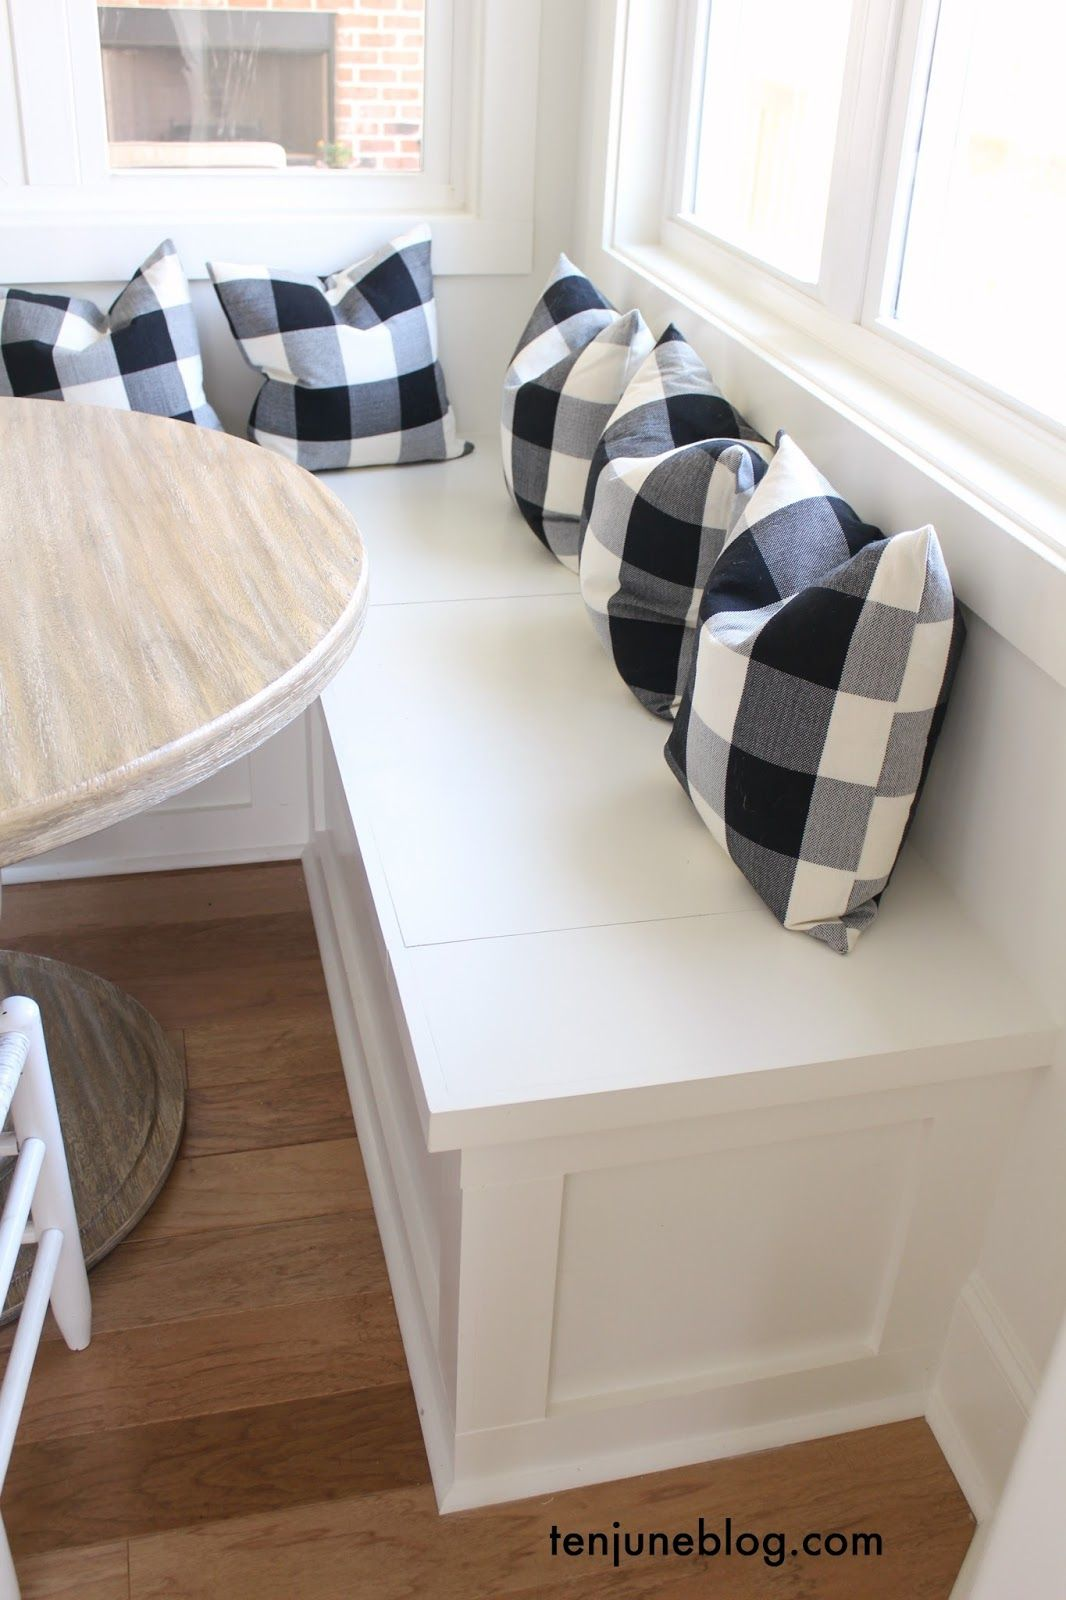 Elegant Ten June: A Farmhouse, Buffalo Check Built In Breakfast Nook White Painted  Built In Benches, Windows, Light Hardwood Floors, Round Rustic Wooden  Table, ...